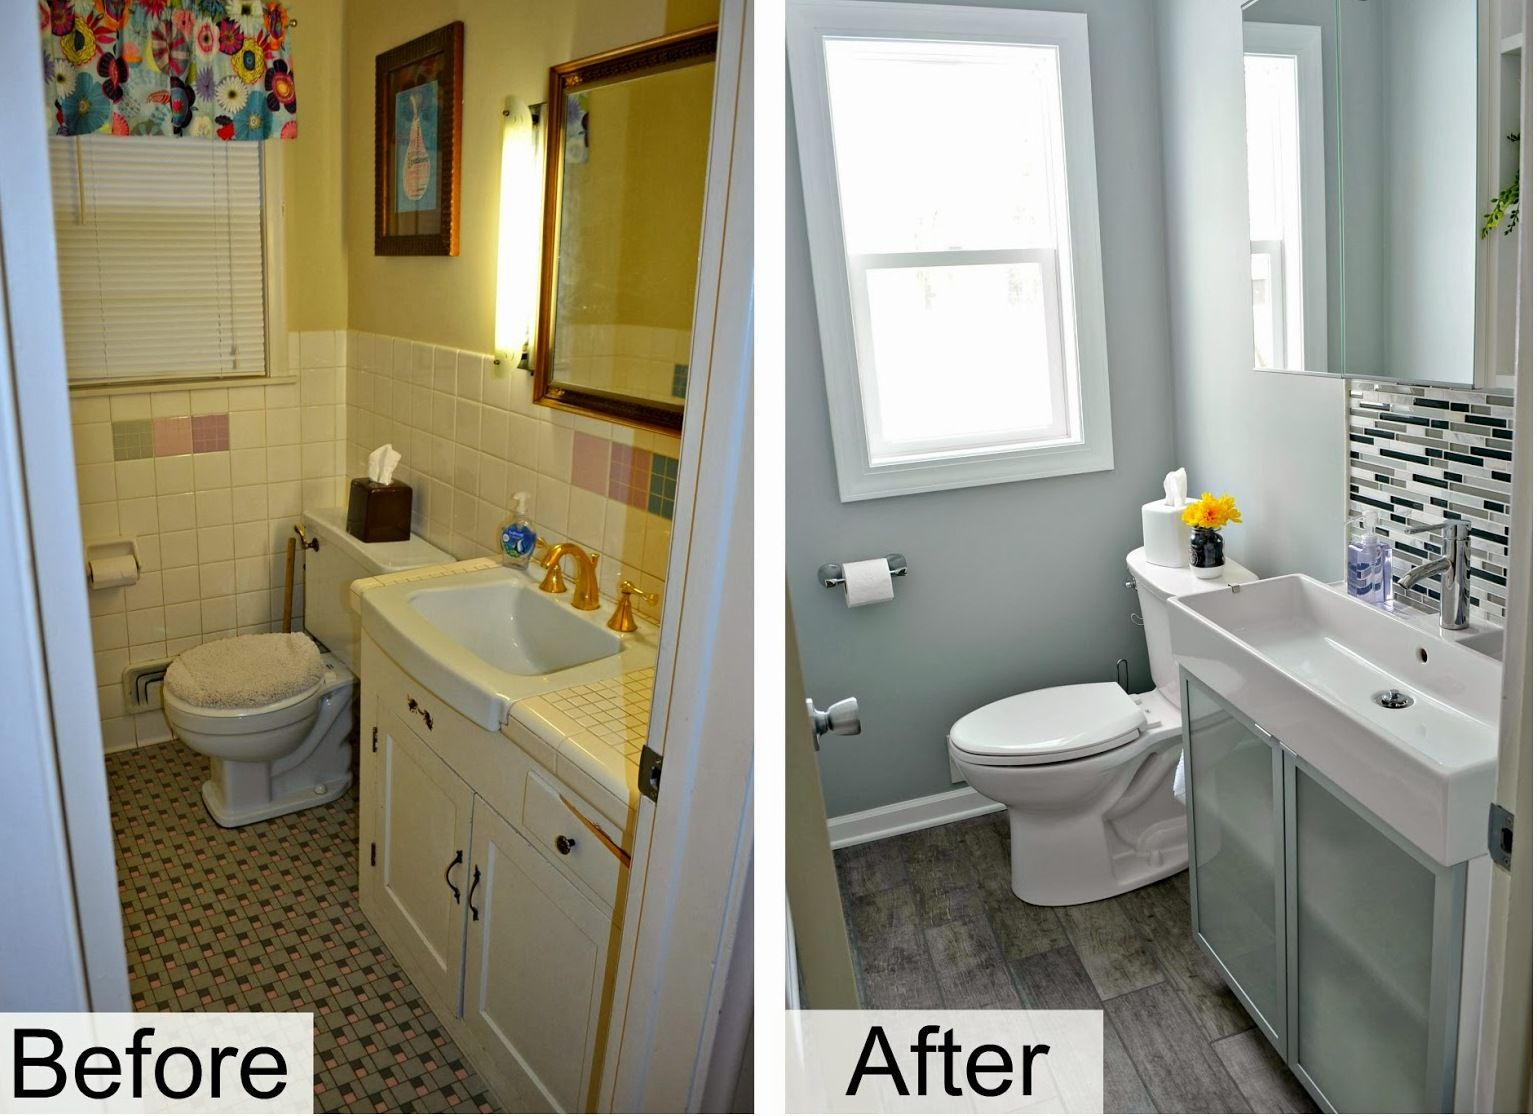 diy bathroom remodel ideas for average people - Small Bathroom Renovation